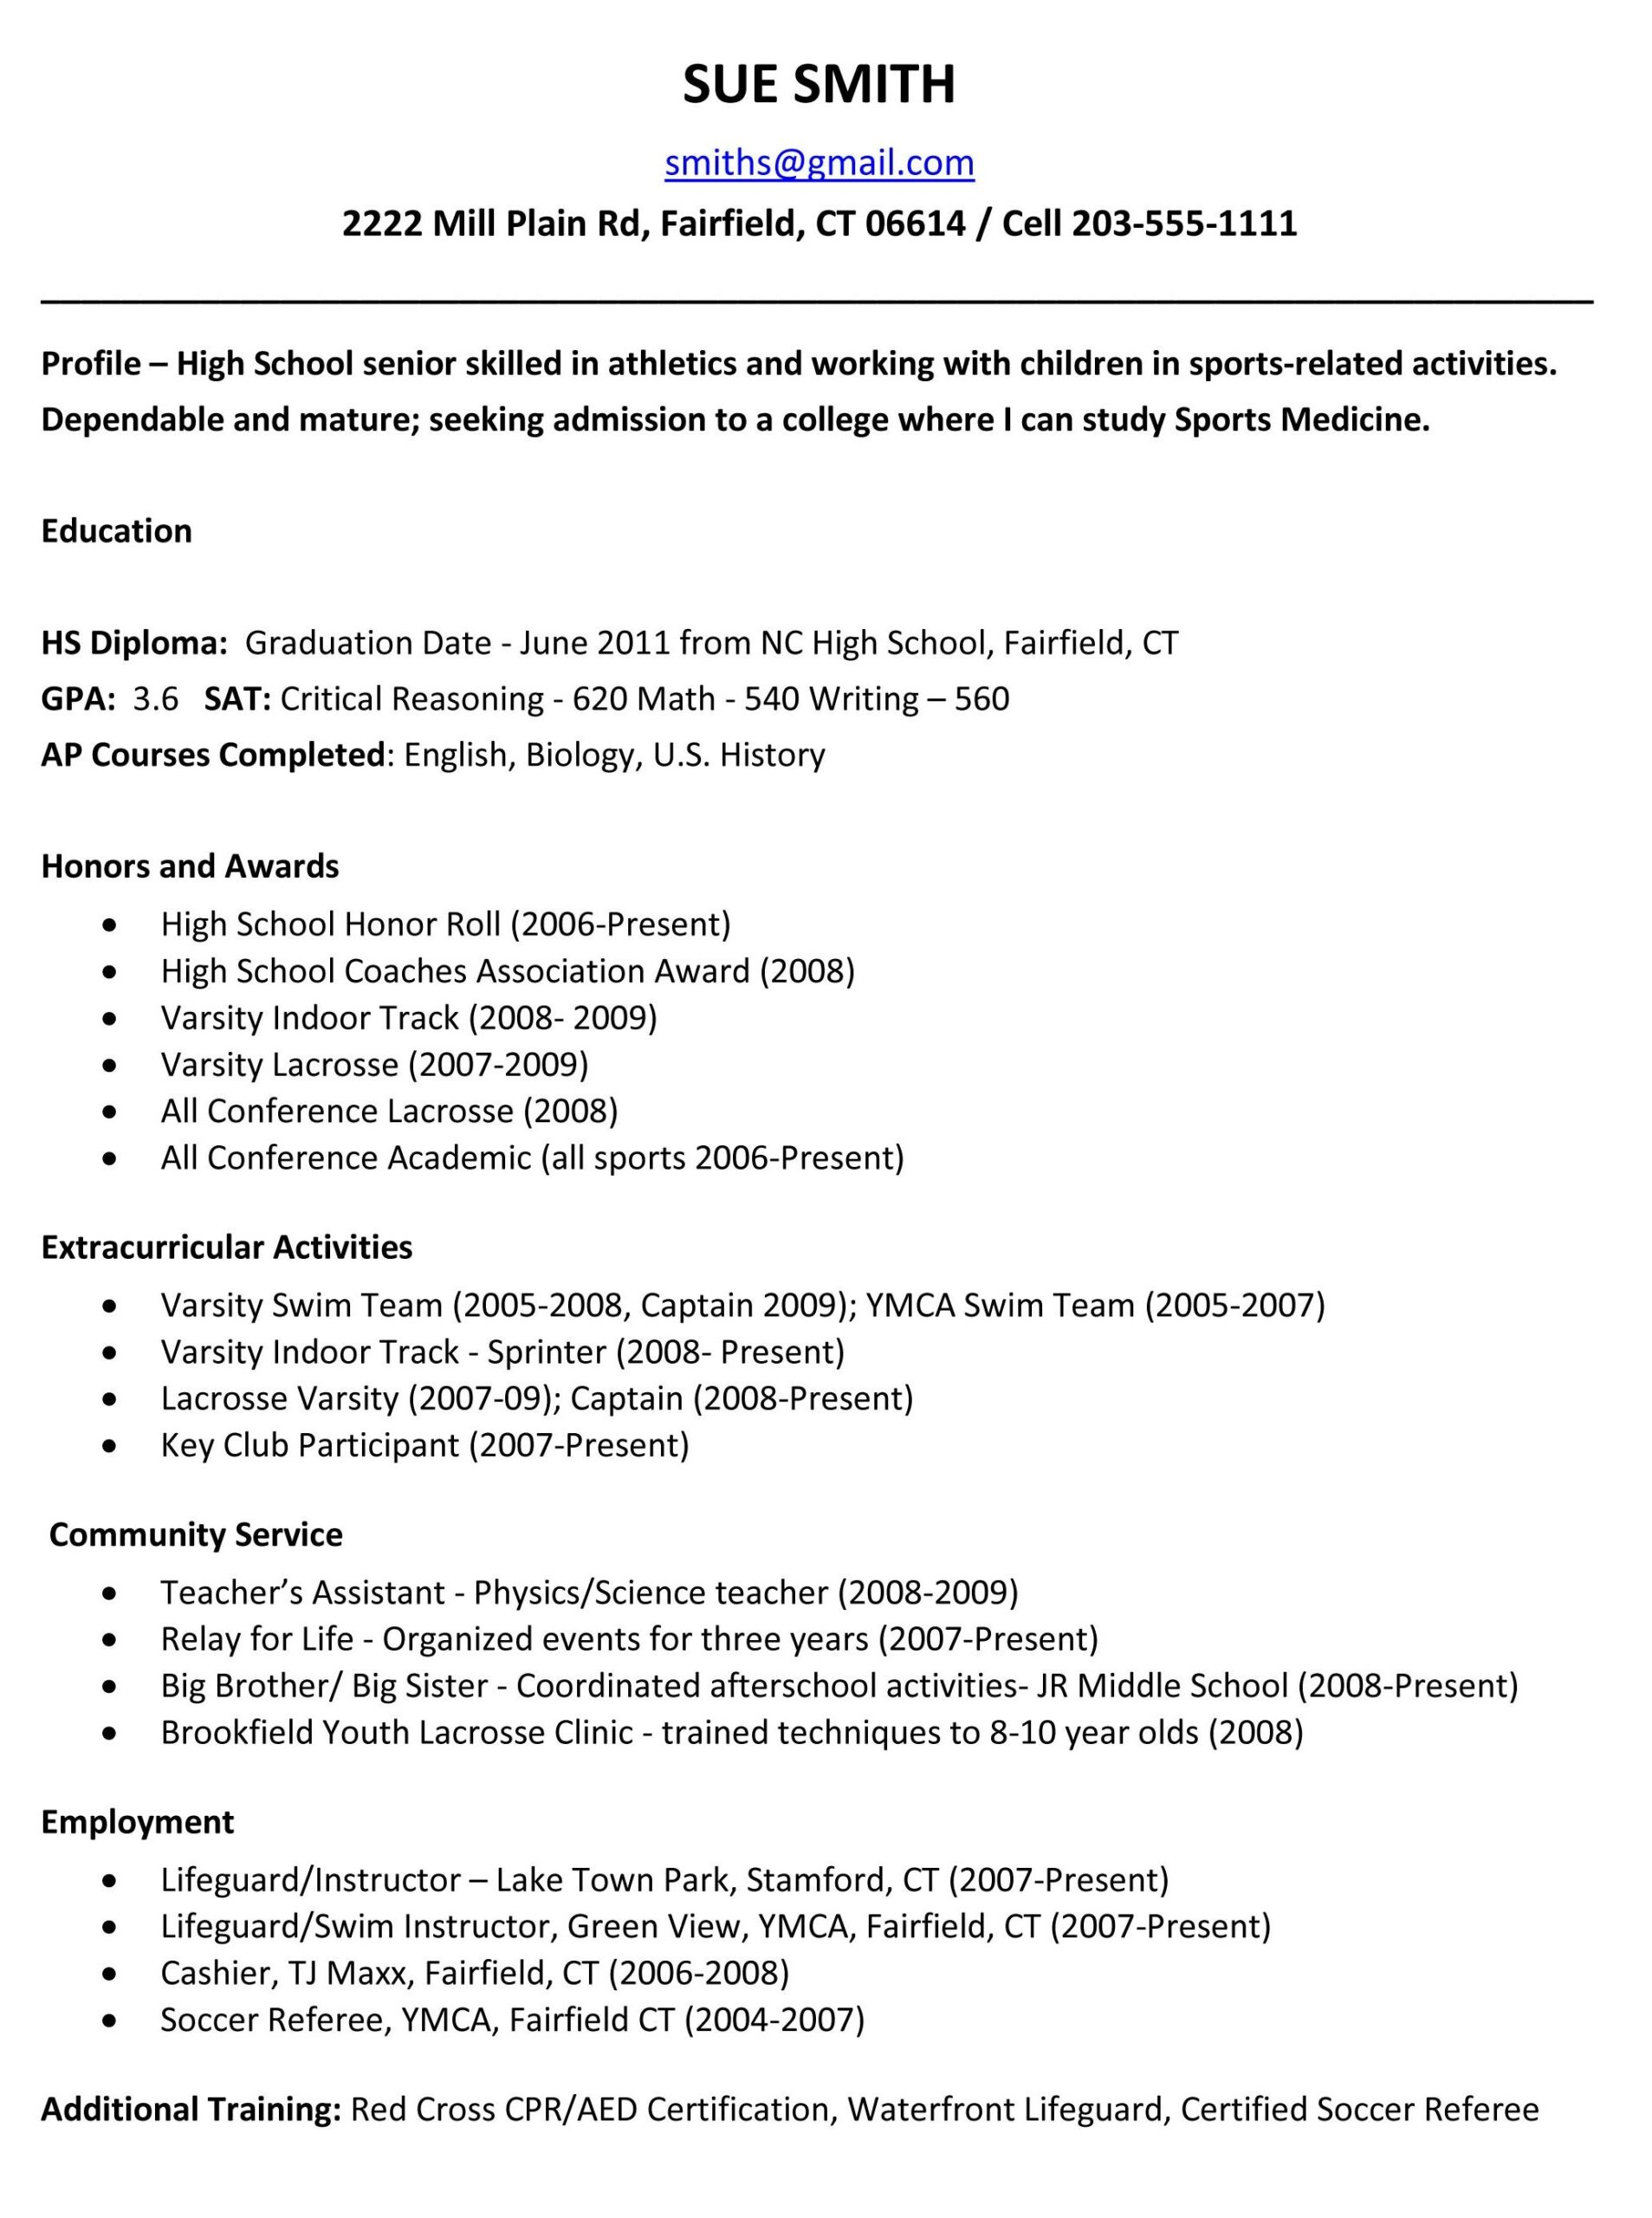 sample resumes high school resume template college application examples for Resume College Application Resume Examples For High School Seniors